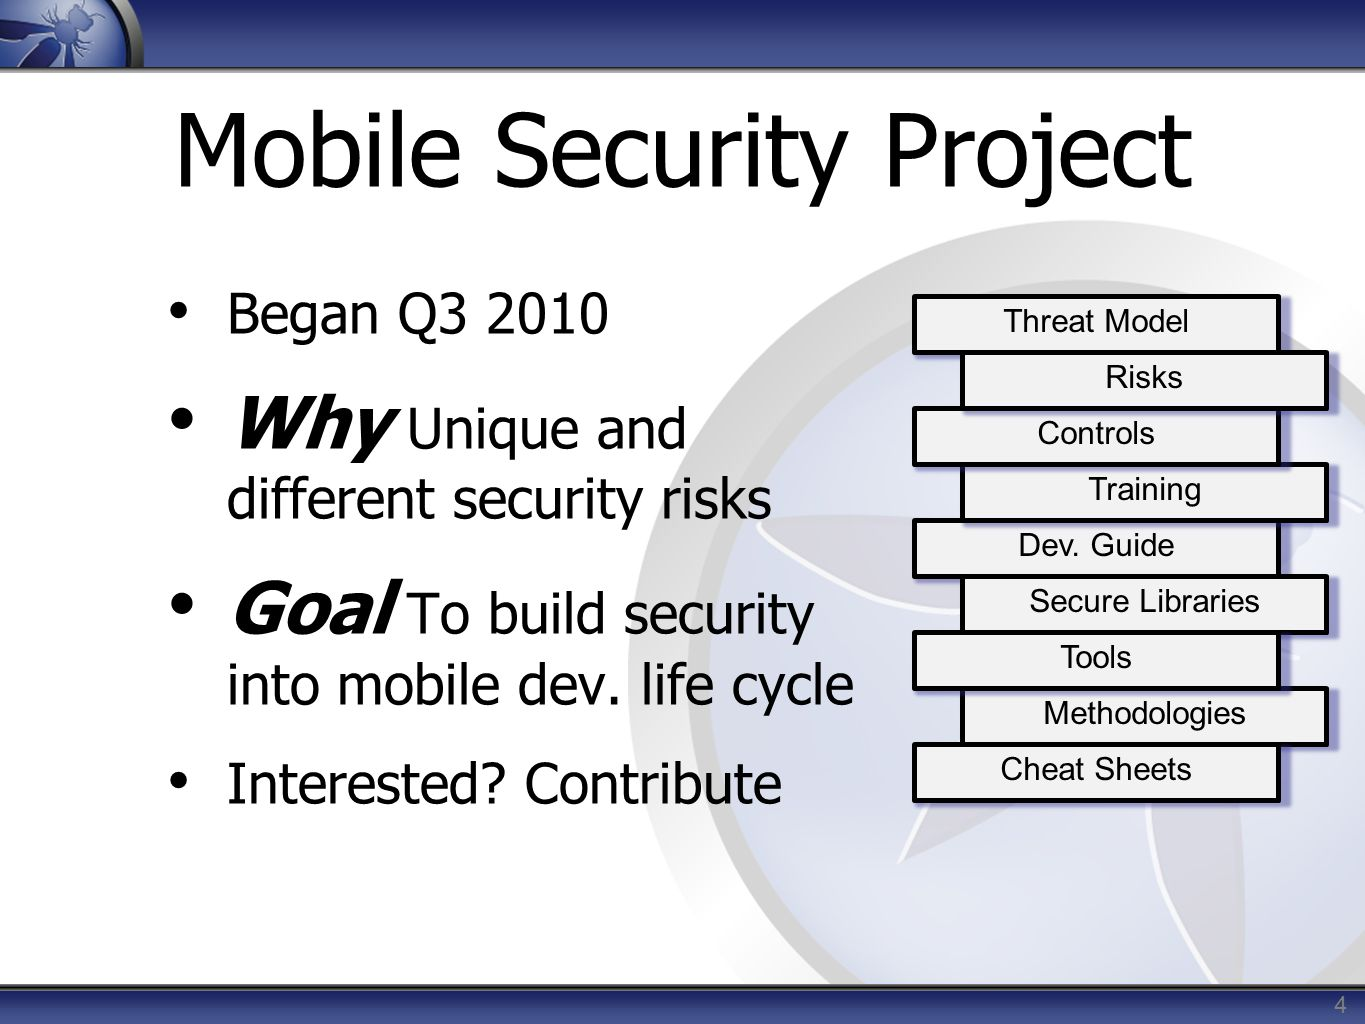 4 Mobile Security Project Began Q3 2010 Why Unique and different security risks Goal To build security into mobile dev. life cycle Interested? Contrib